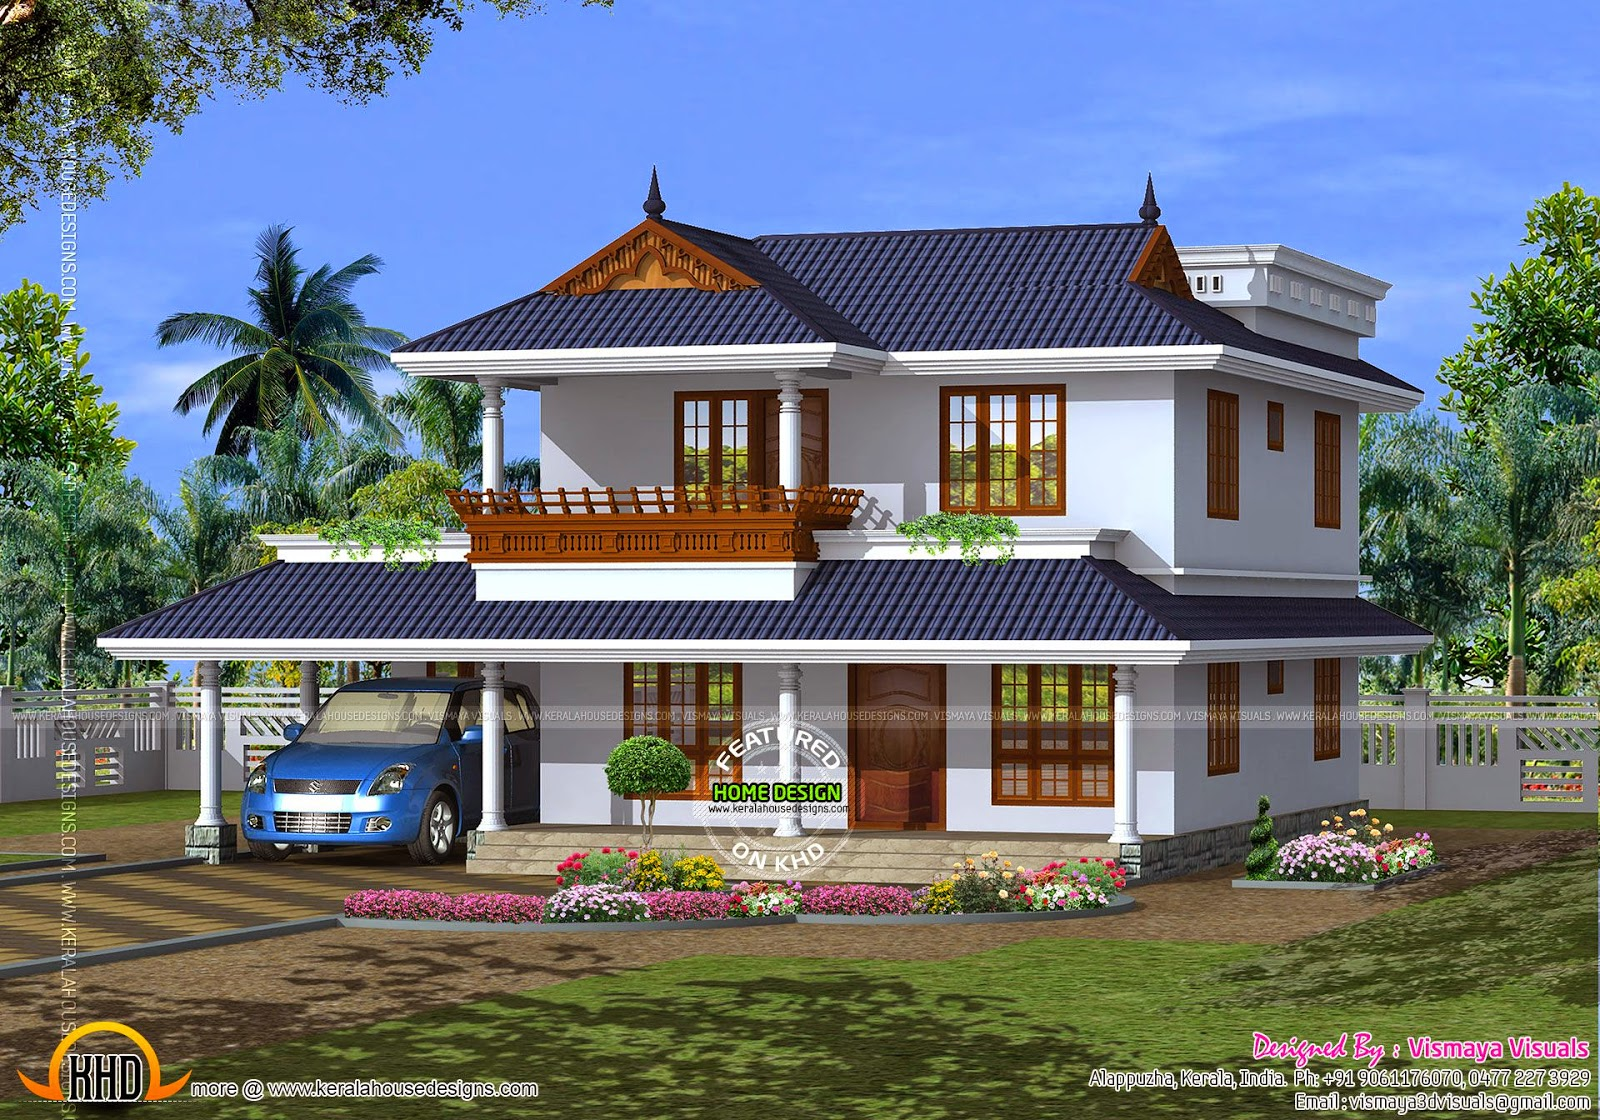 House model kerala kerala home design and floor plans for House models and plans